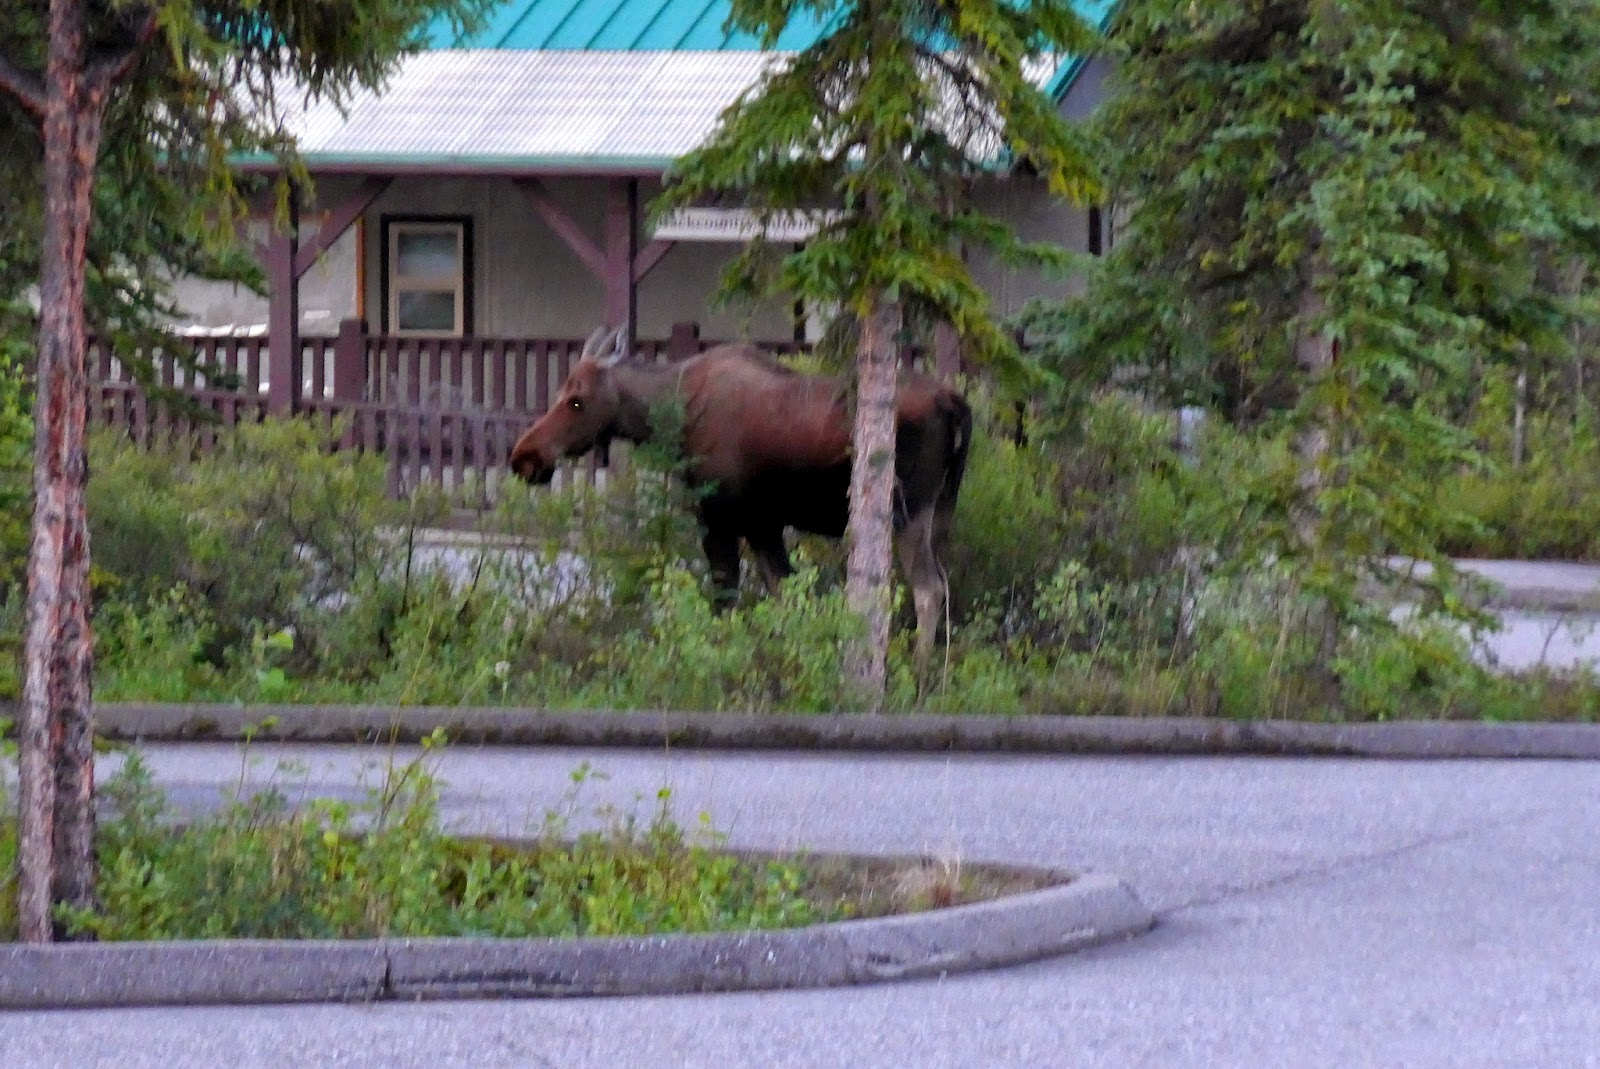 Moose at the Entrance of the Park's Visitor Centre